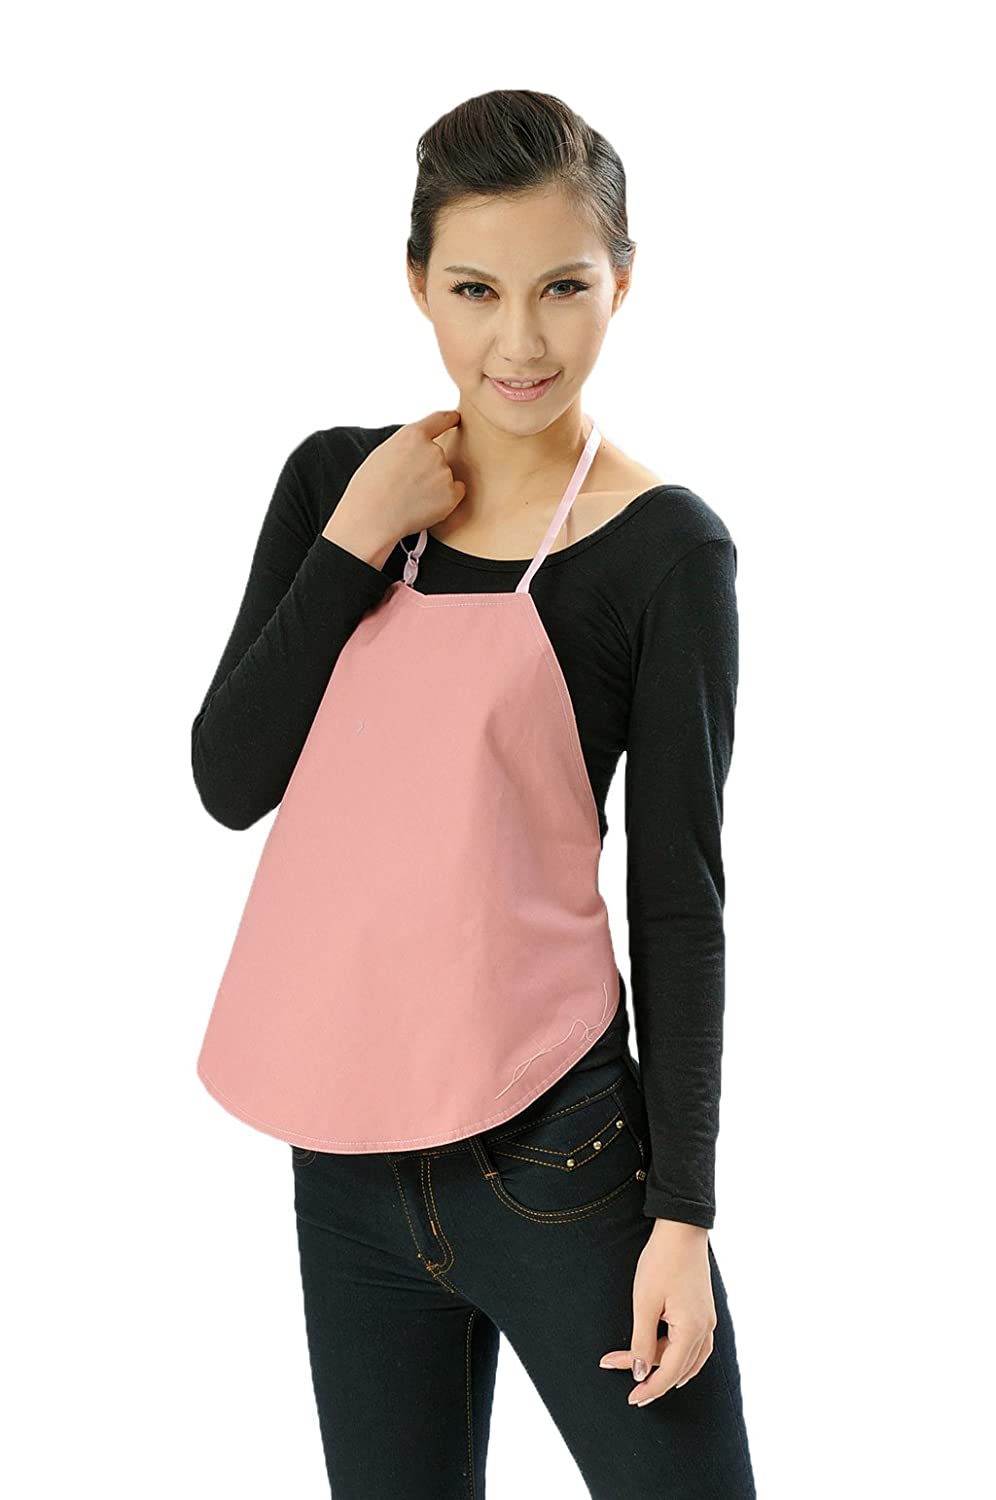 Oursure maternity clothes belly tee with radiation shielding oursure maternity clothes belly tee with radiation shielding onesize pink at amazon womens clothing store fashion maternity t shirts ombrellifo Image collections